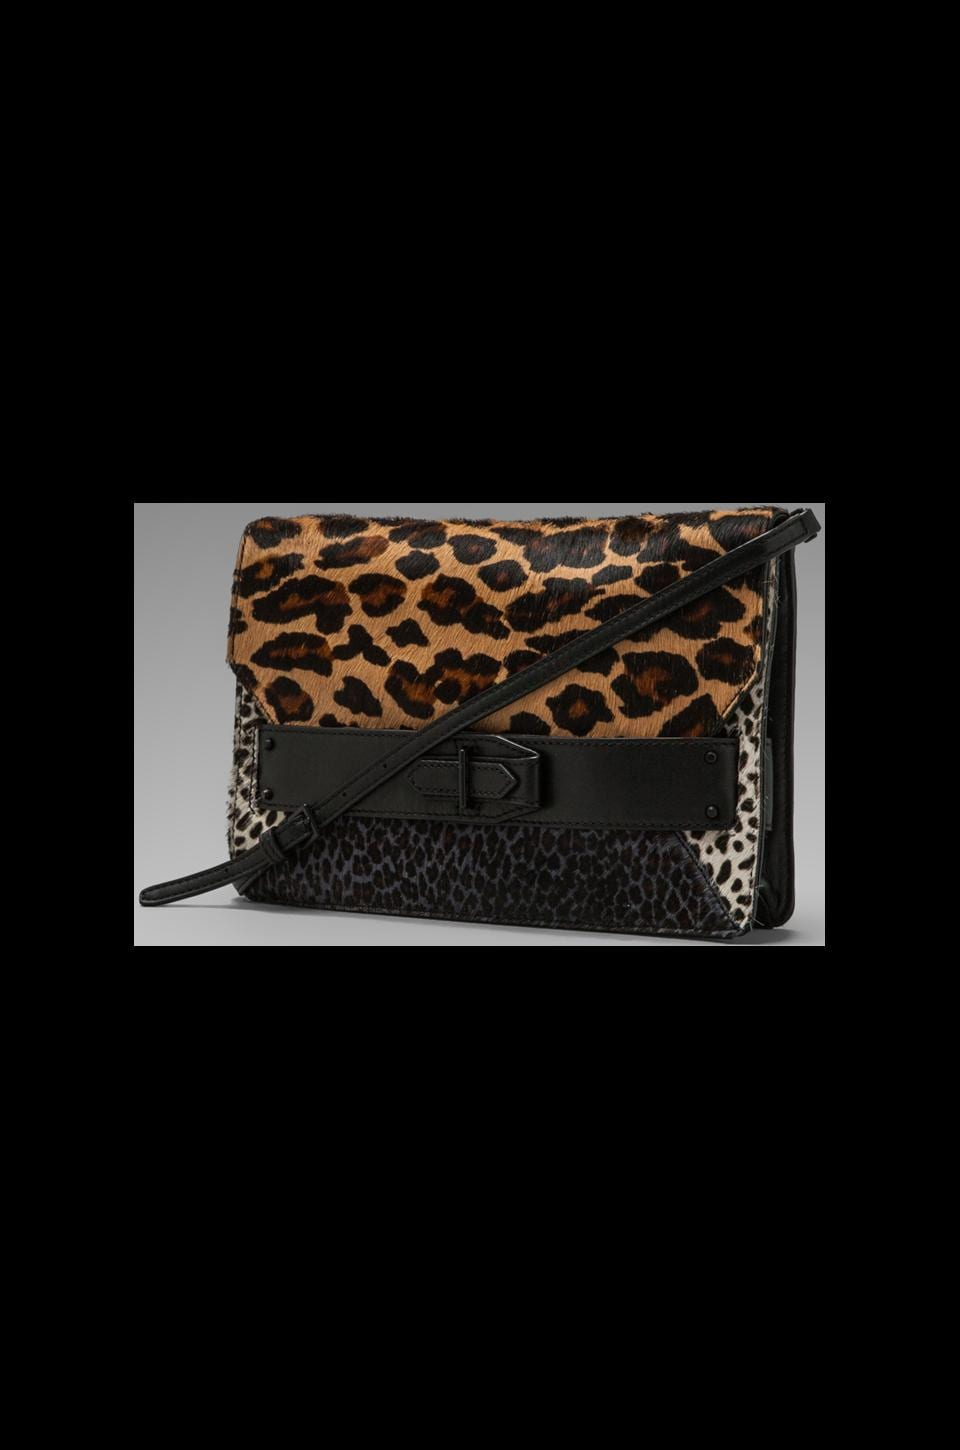 DEREK LAM 10 CROSBY Mixed Leopard Print Folio Clutch in Camel Multi